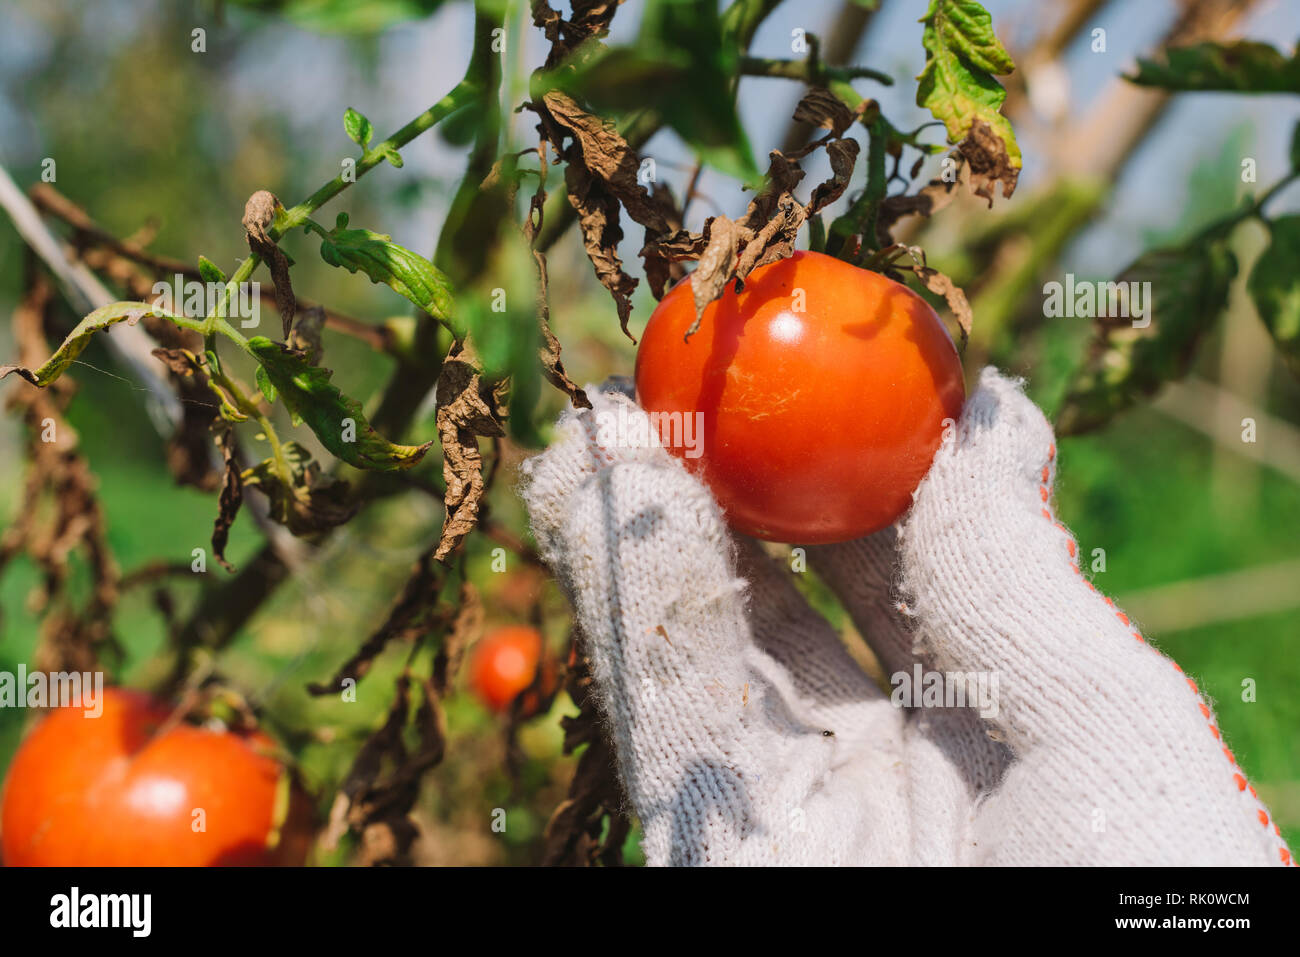 Hand picking tomato in organic vegetable garden, close up Stock Photo